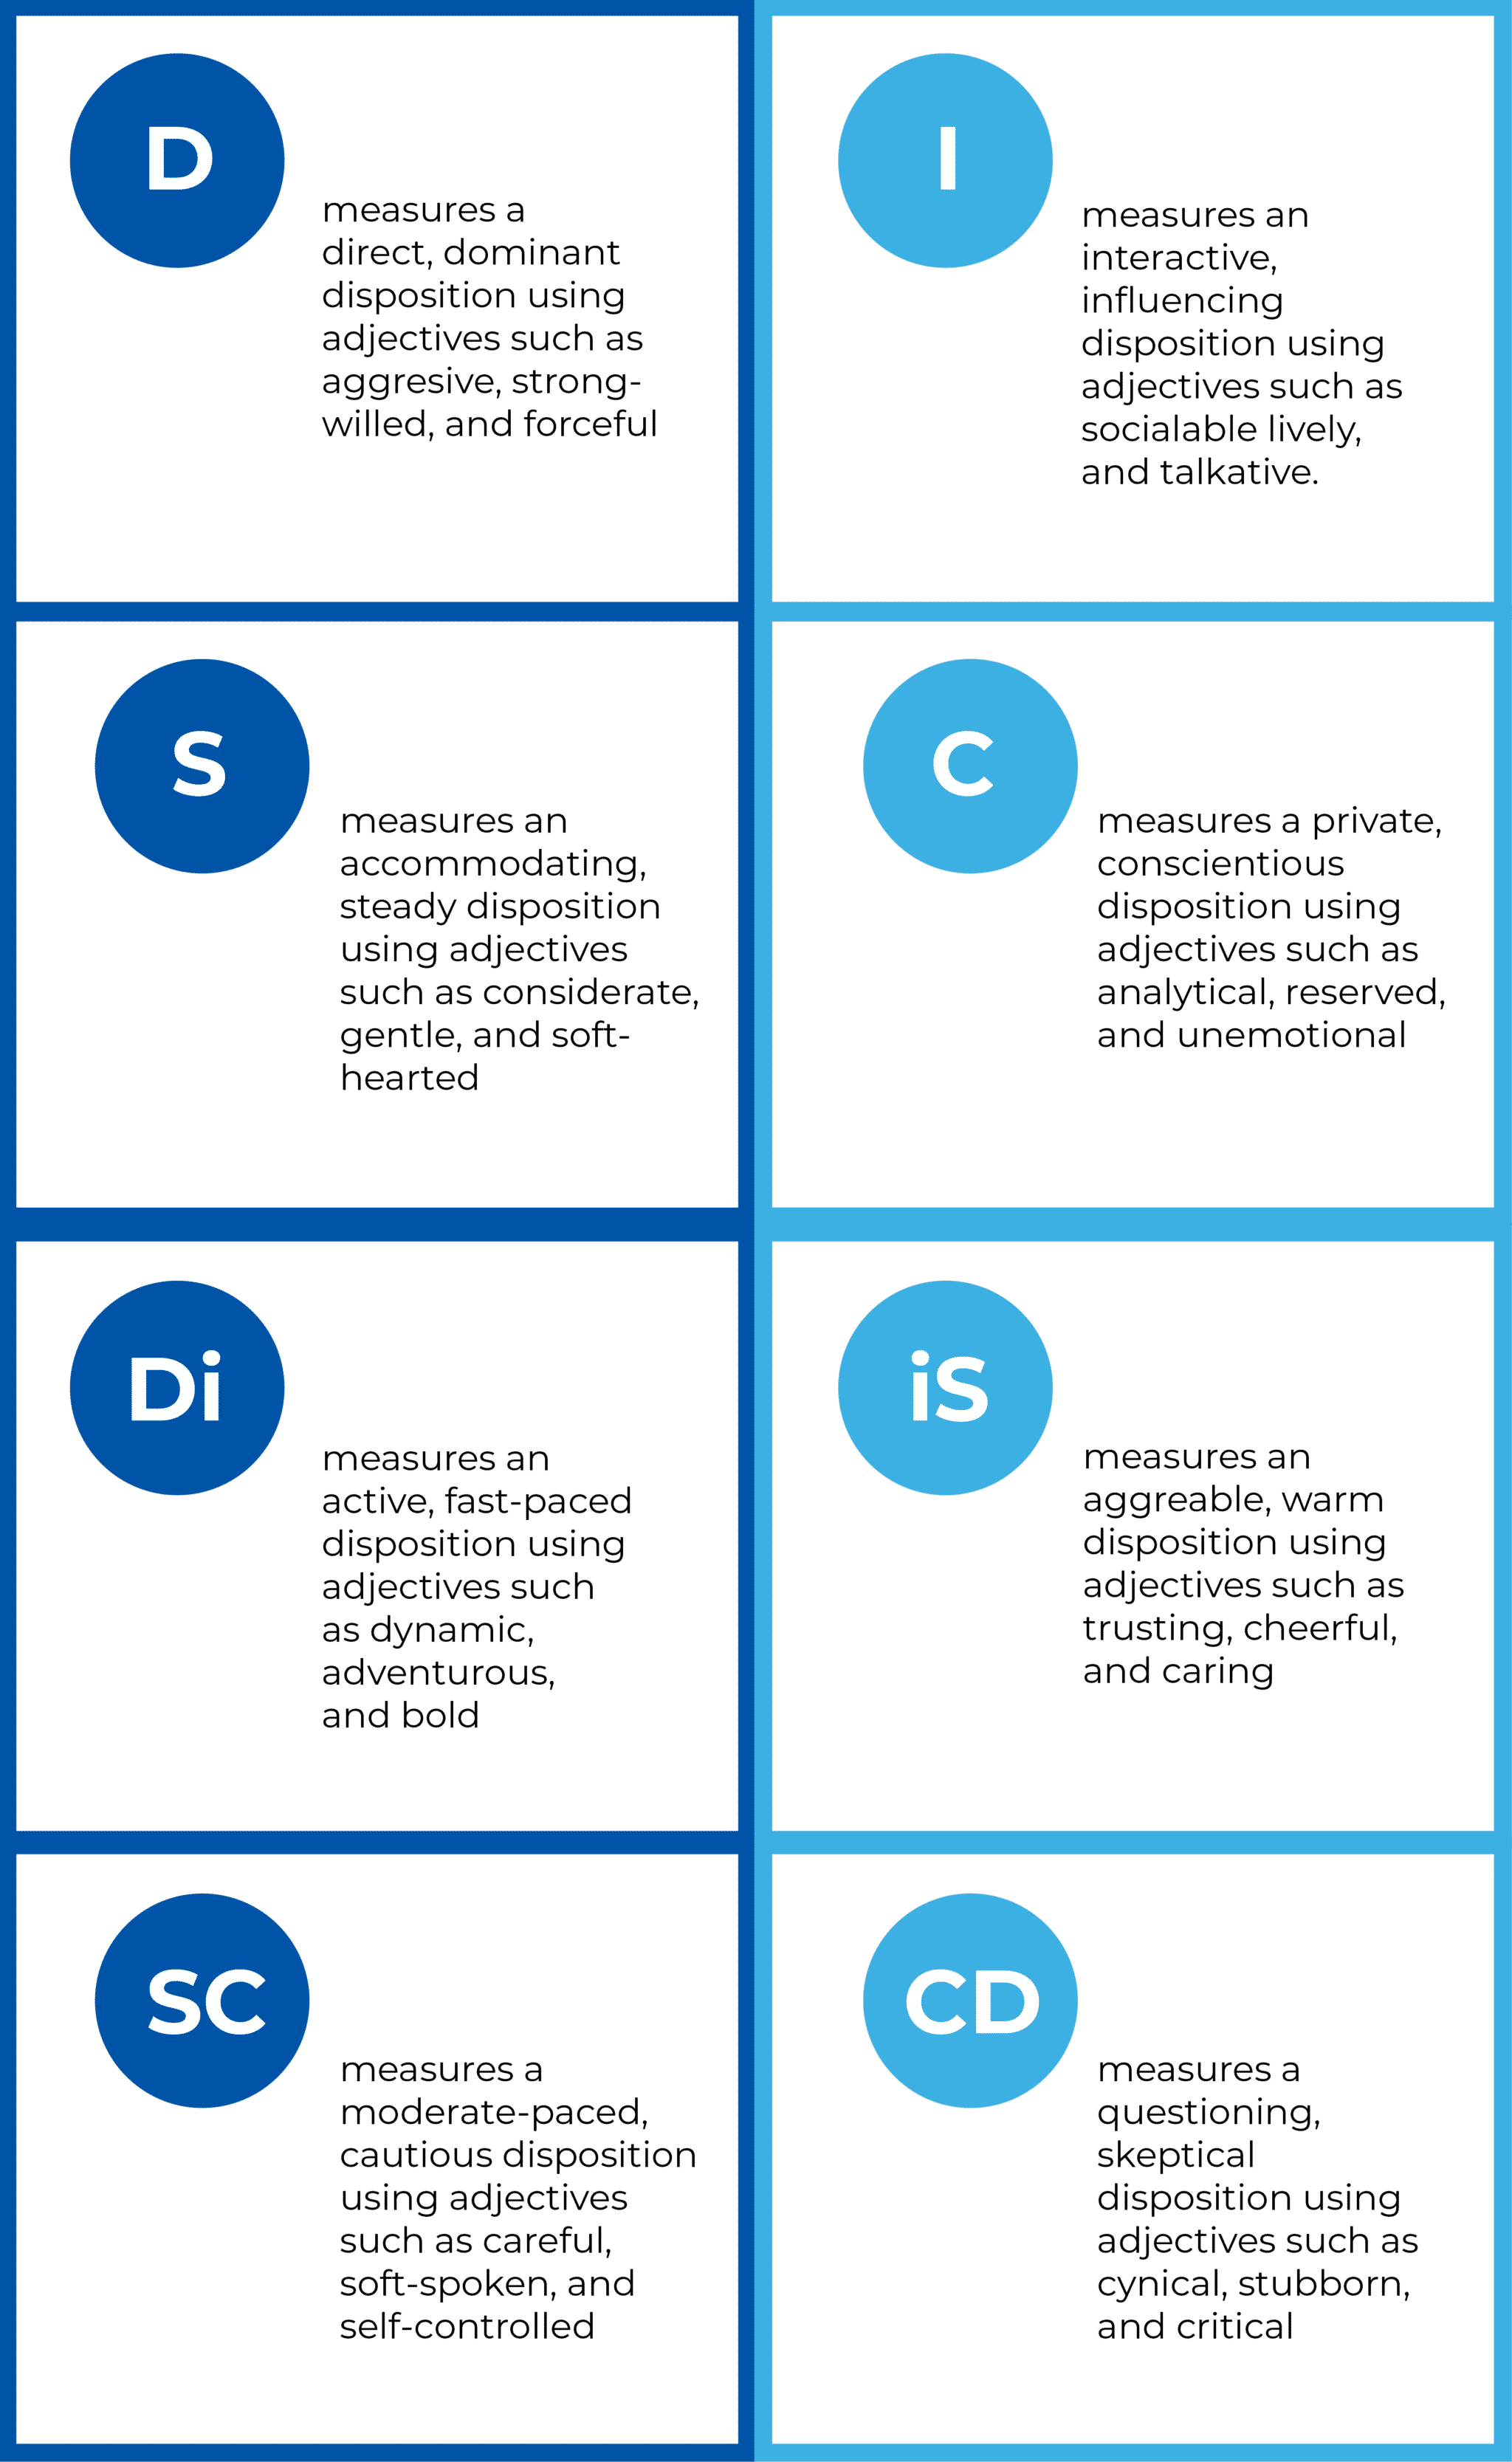 SUMMARY OF THE FOUR PERSONALITY TYPES